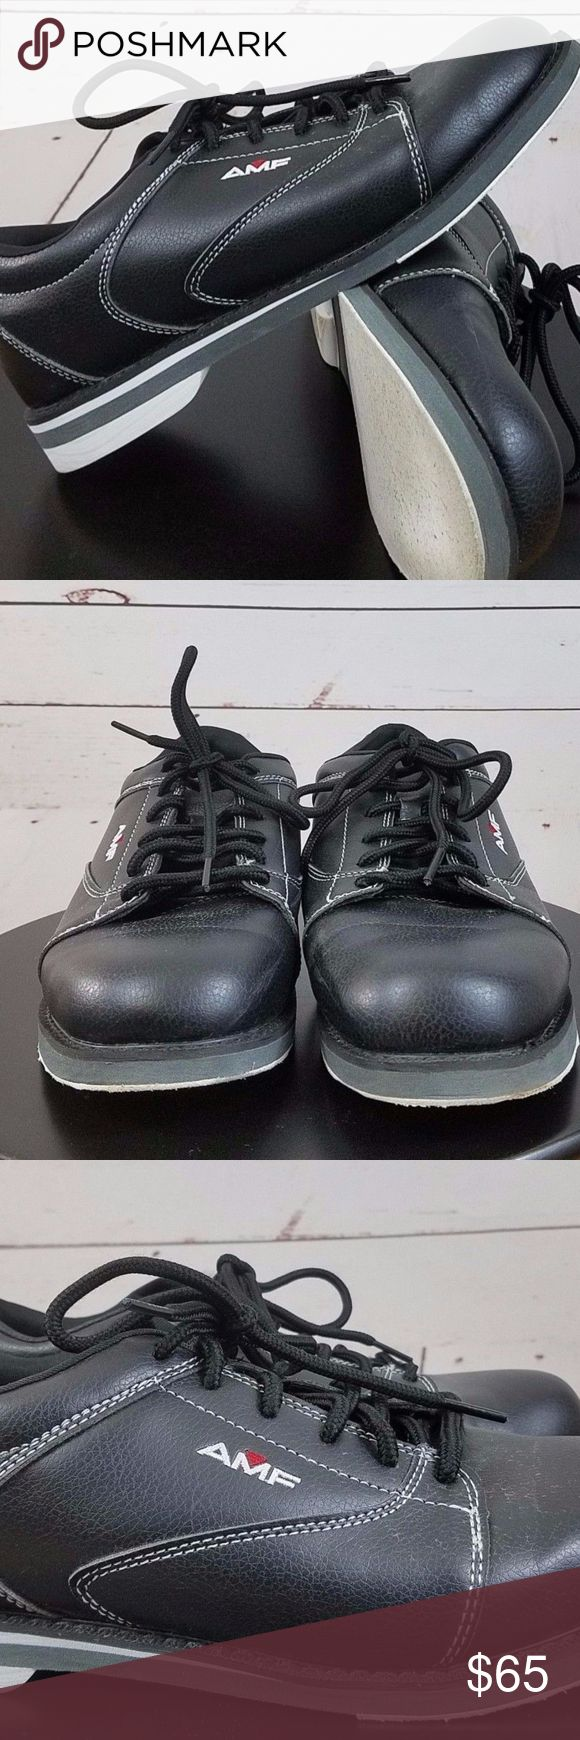 AMF Men's Bowling Shoes Size 9 Black Style L51028A AMF Men's Bowling Shoes Size 9 Black Style L51028AV  Gently used shoes with some lite normal wear. amf Shoes Athletic Shoes